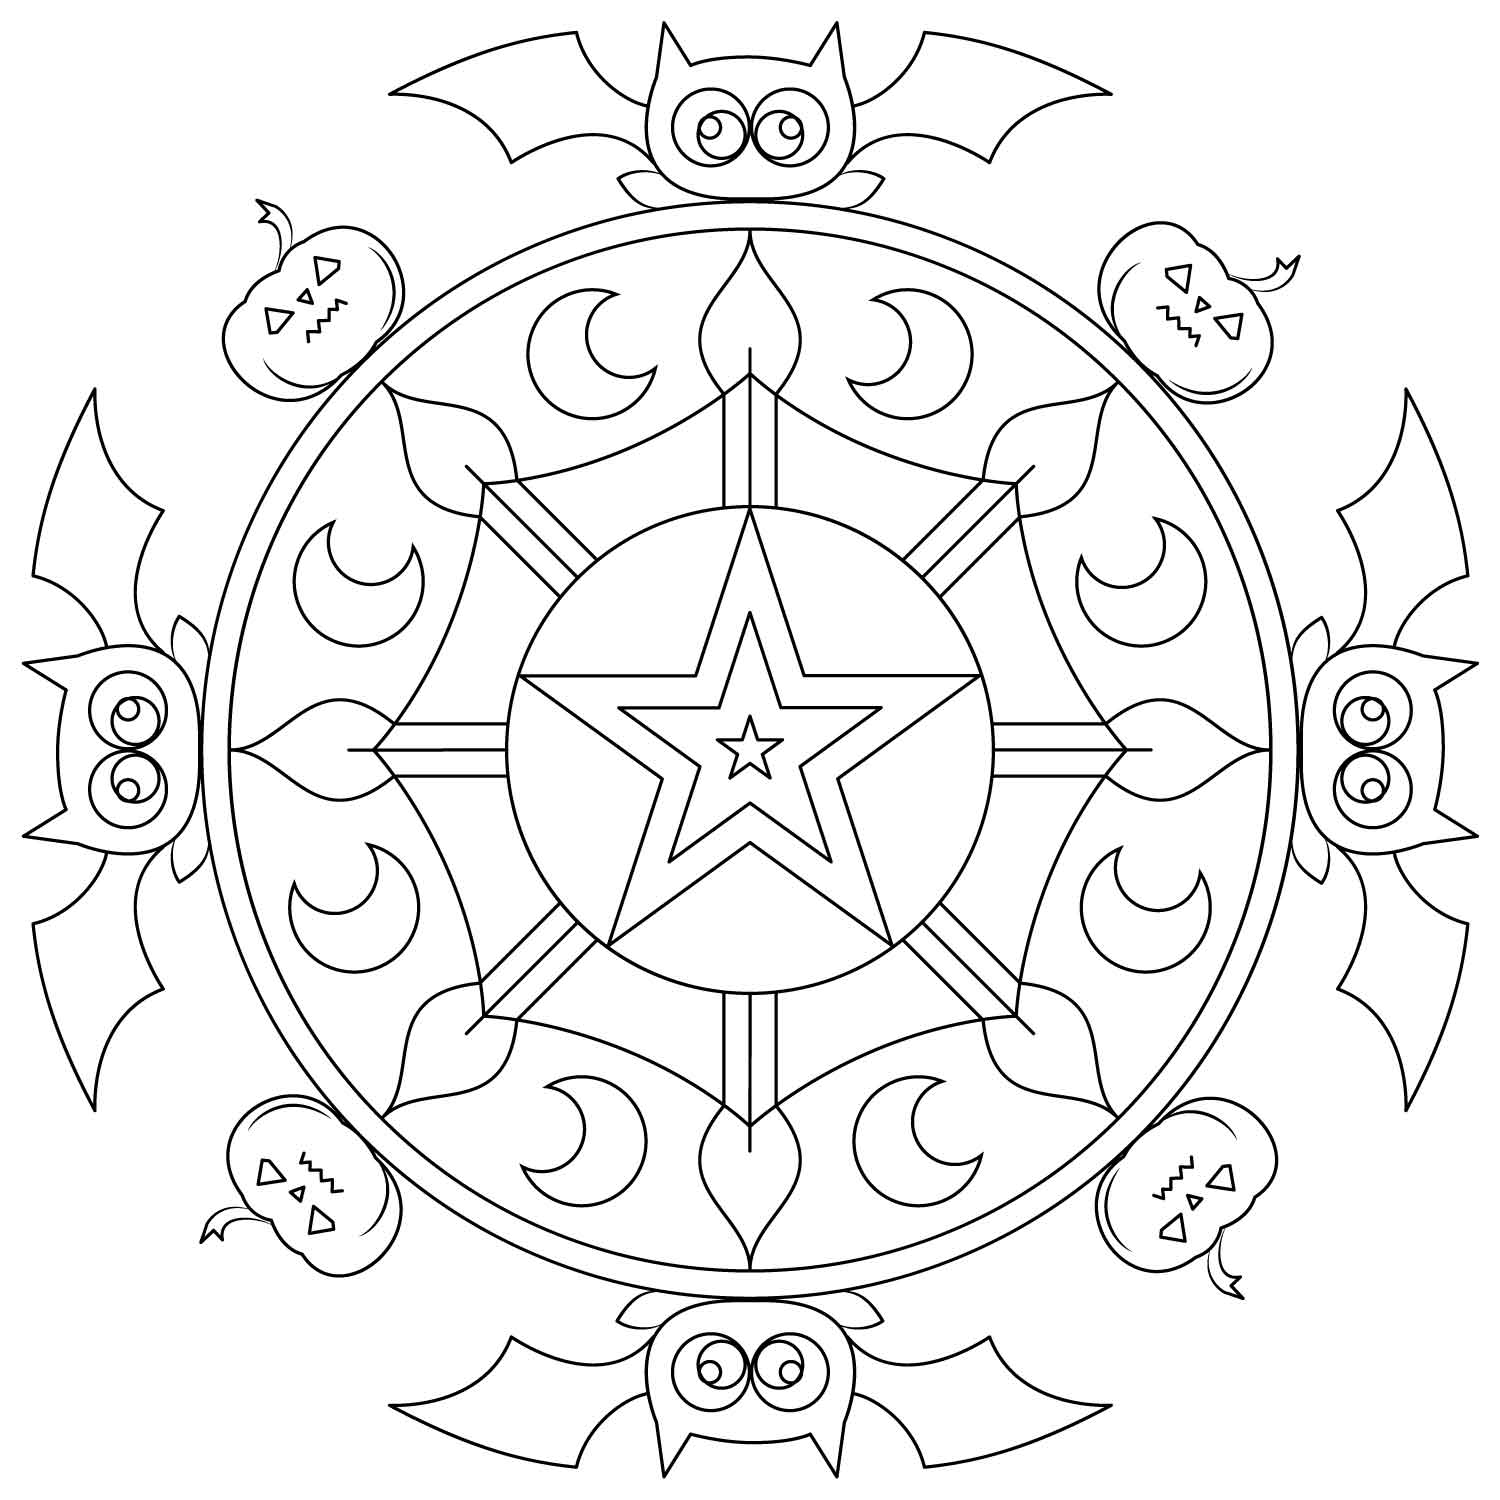 halloween mandala coloring pages halloween mandala s9e99 coloring pages printable mandala halloween coloring pages